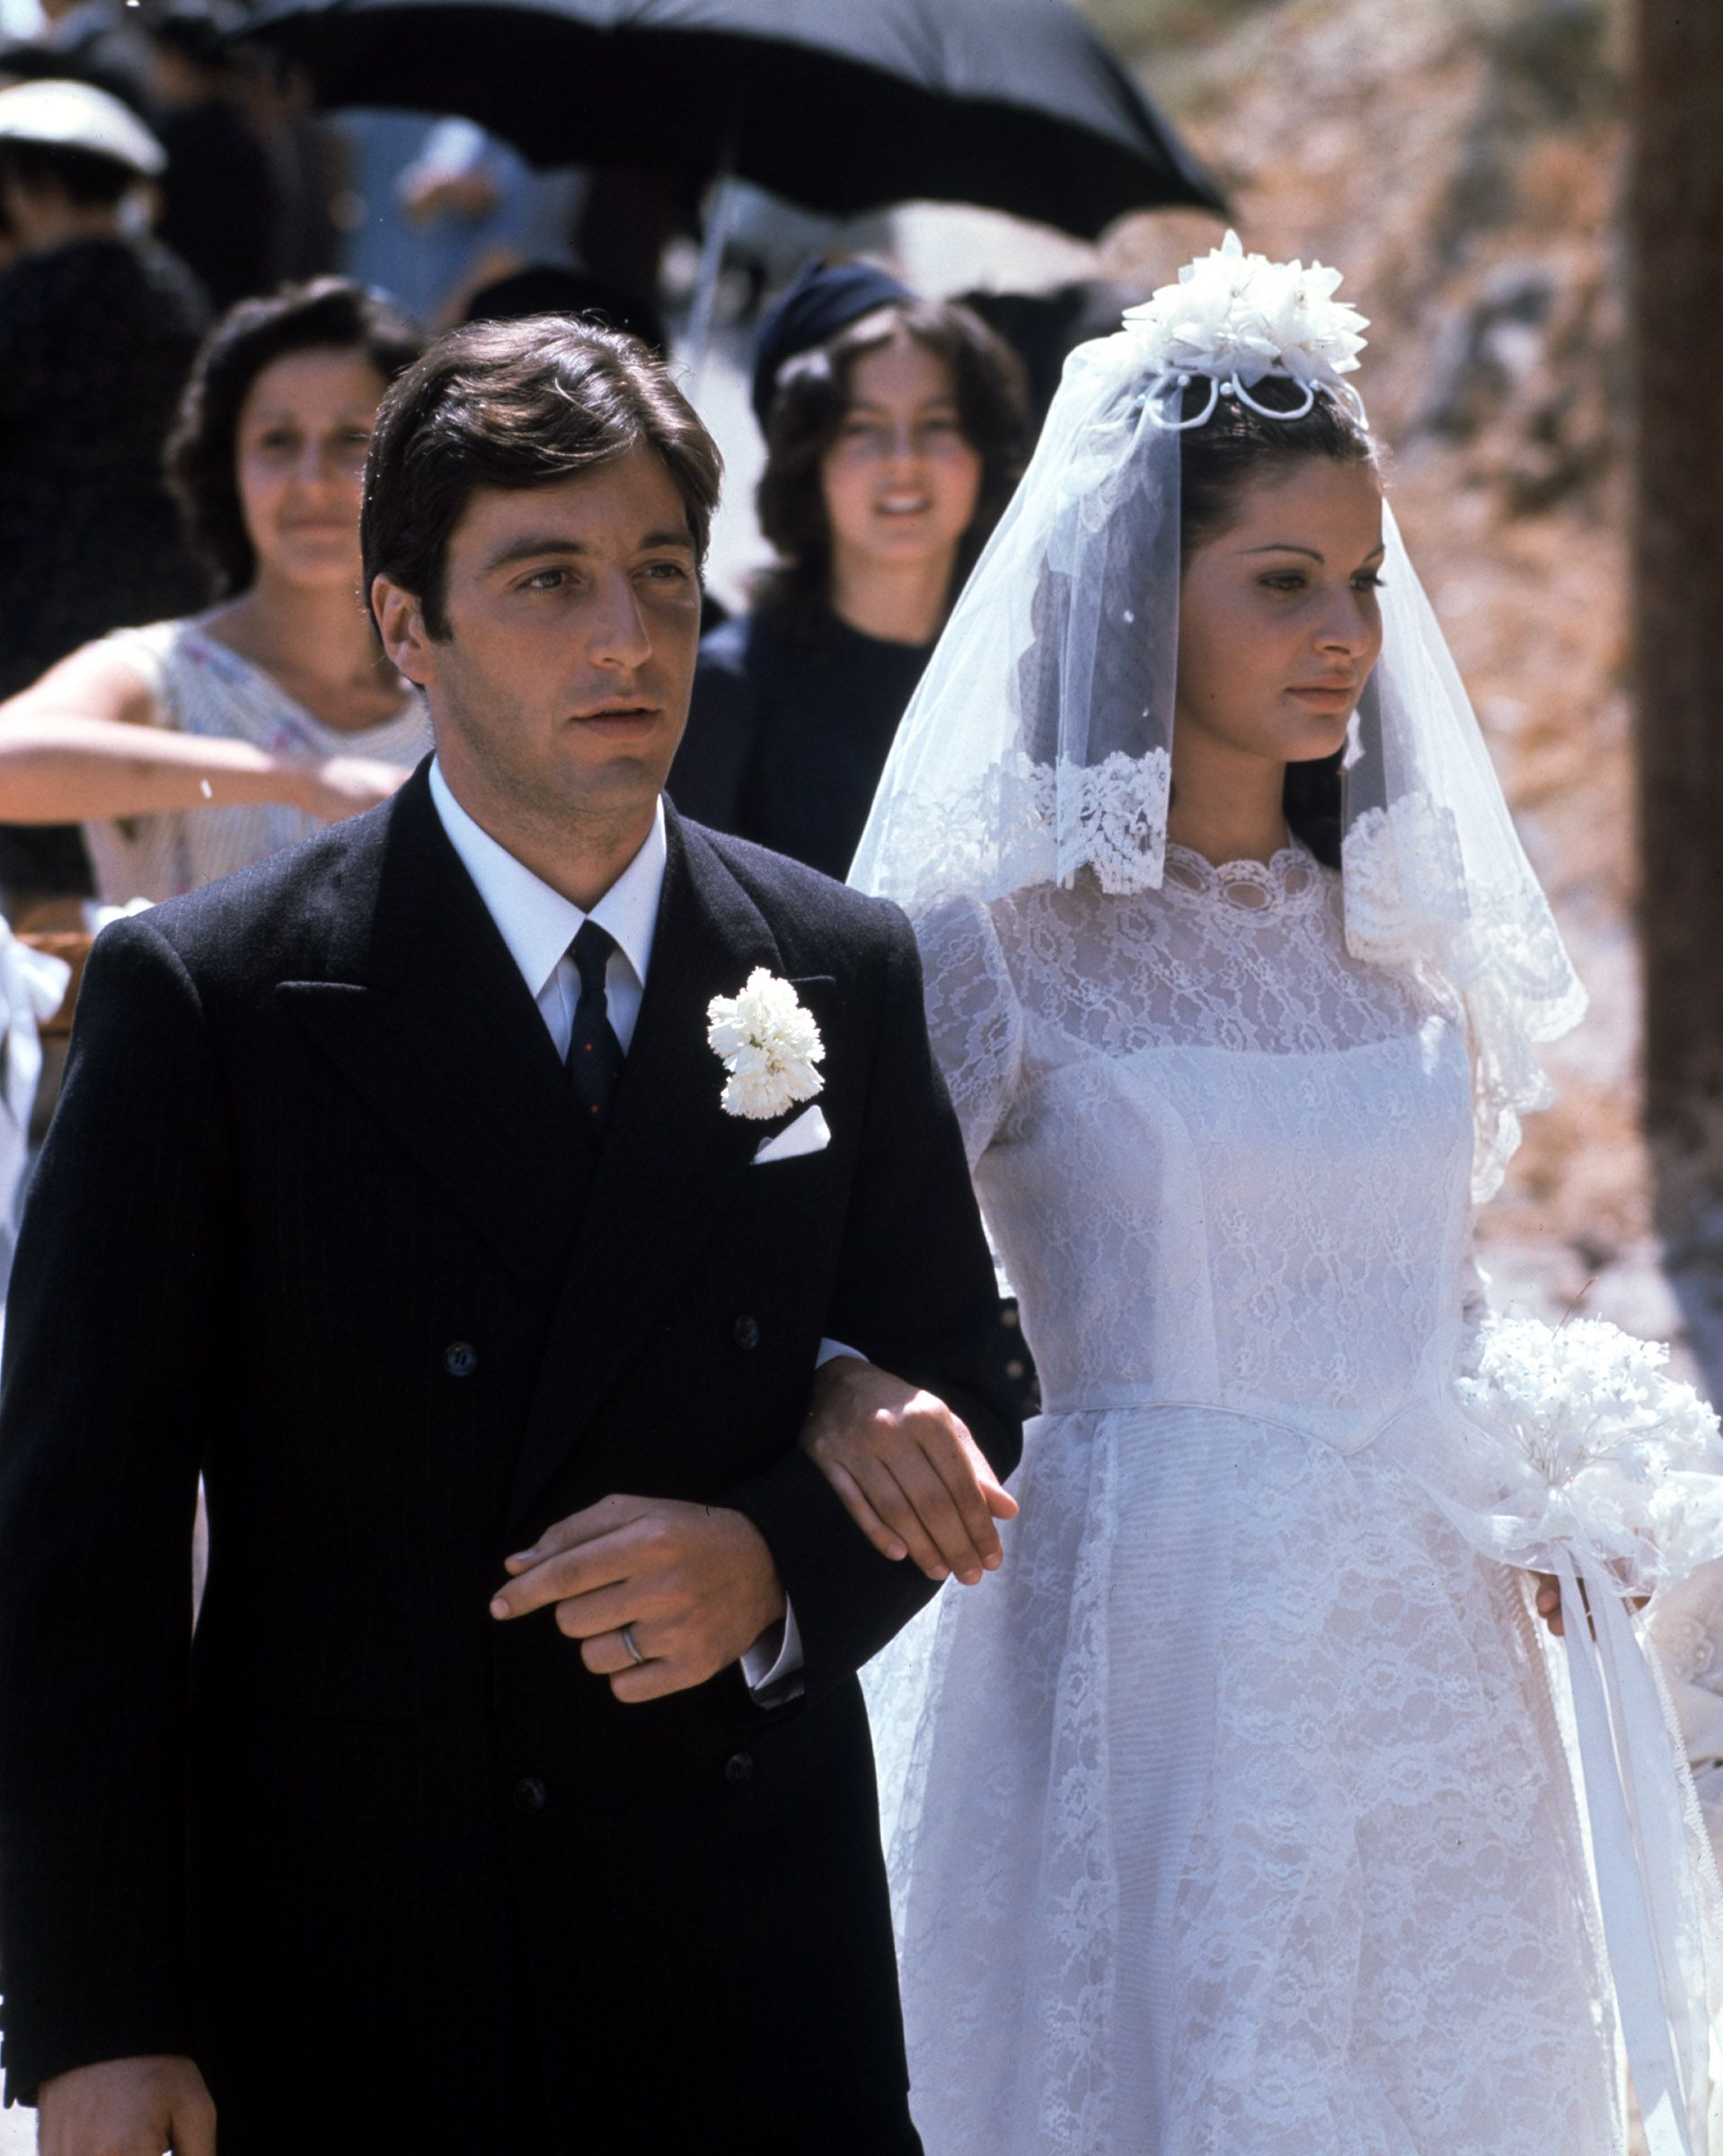 The Best Movie Wedding Scenes From Oscar Nominated Films